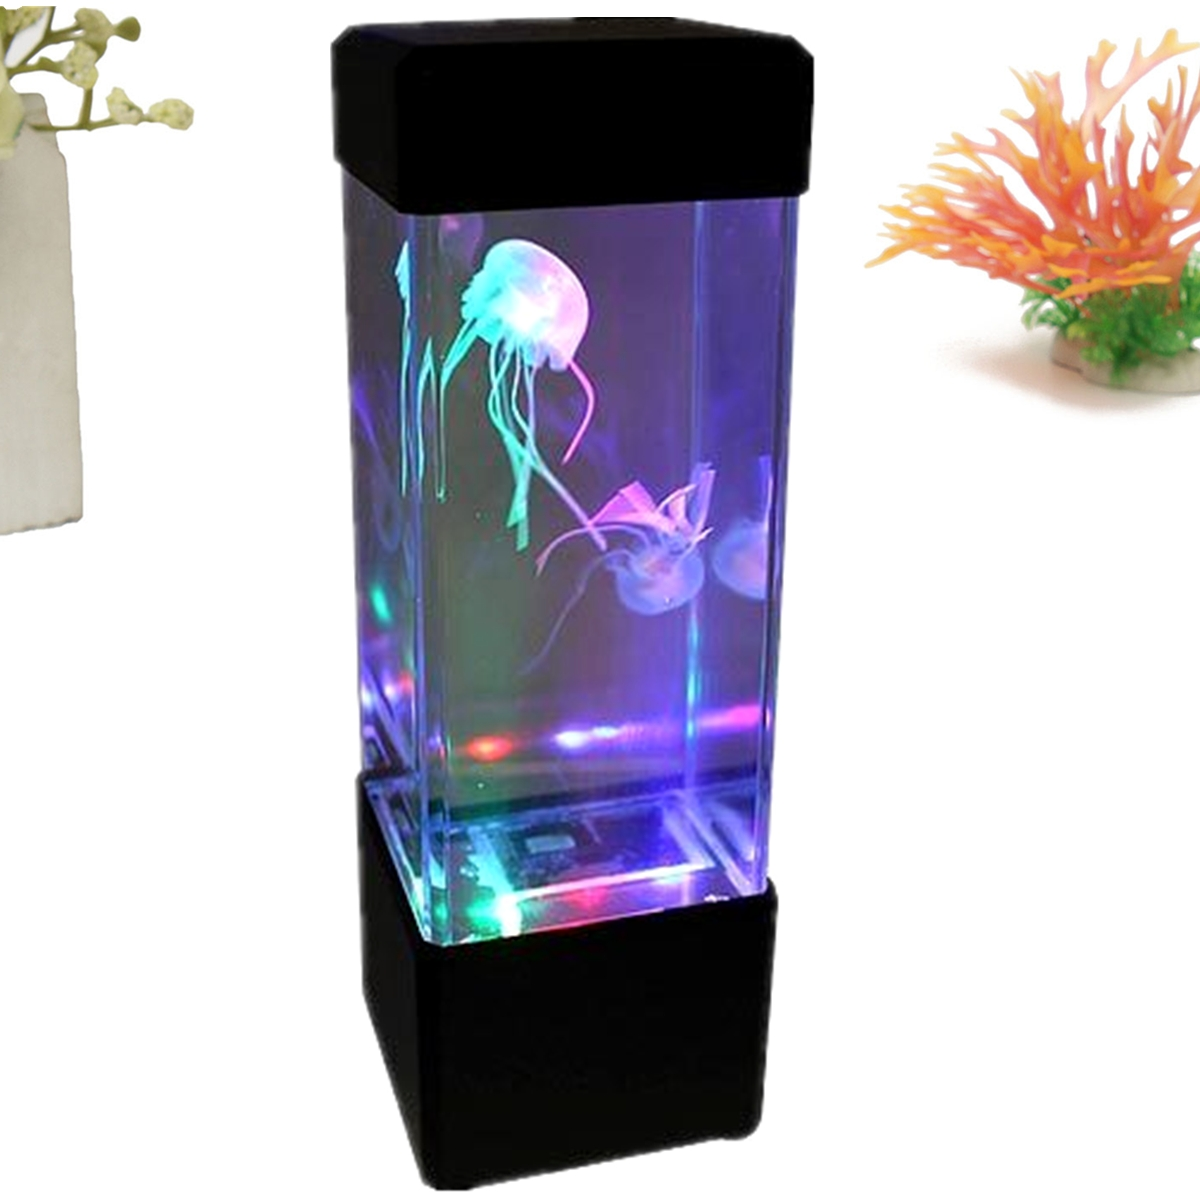 Aquarium led motion lights lamp jellyfish fish volcano for Room decor led lights